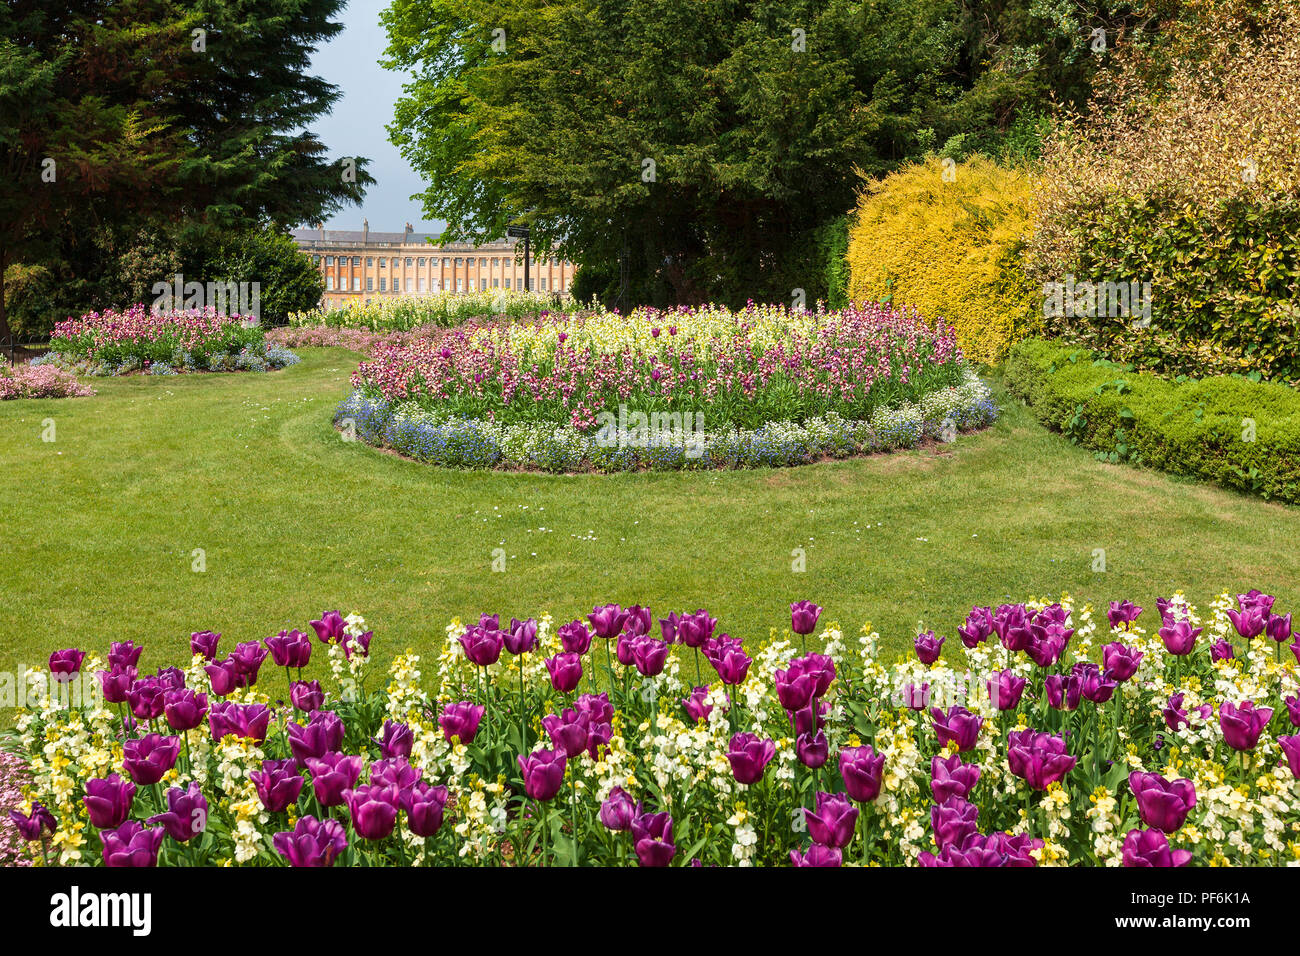 Flower beds in Royal Victoria Park, Bath, England with the famous Royal Crescent seen in the distance behind. Stock Photo